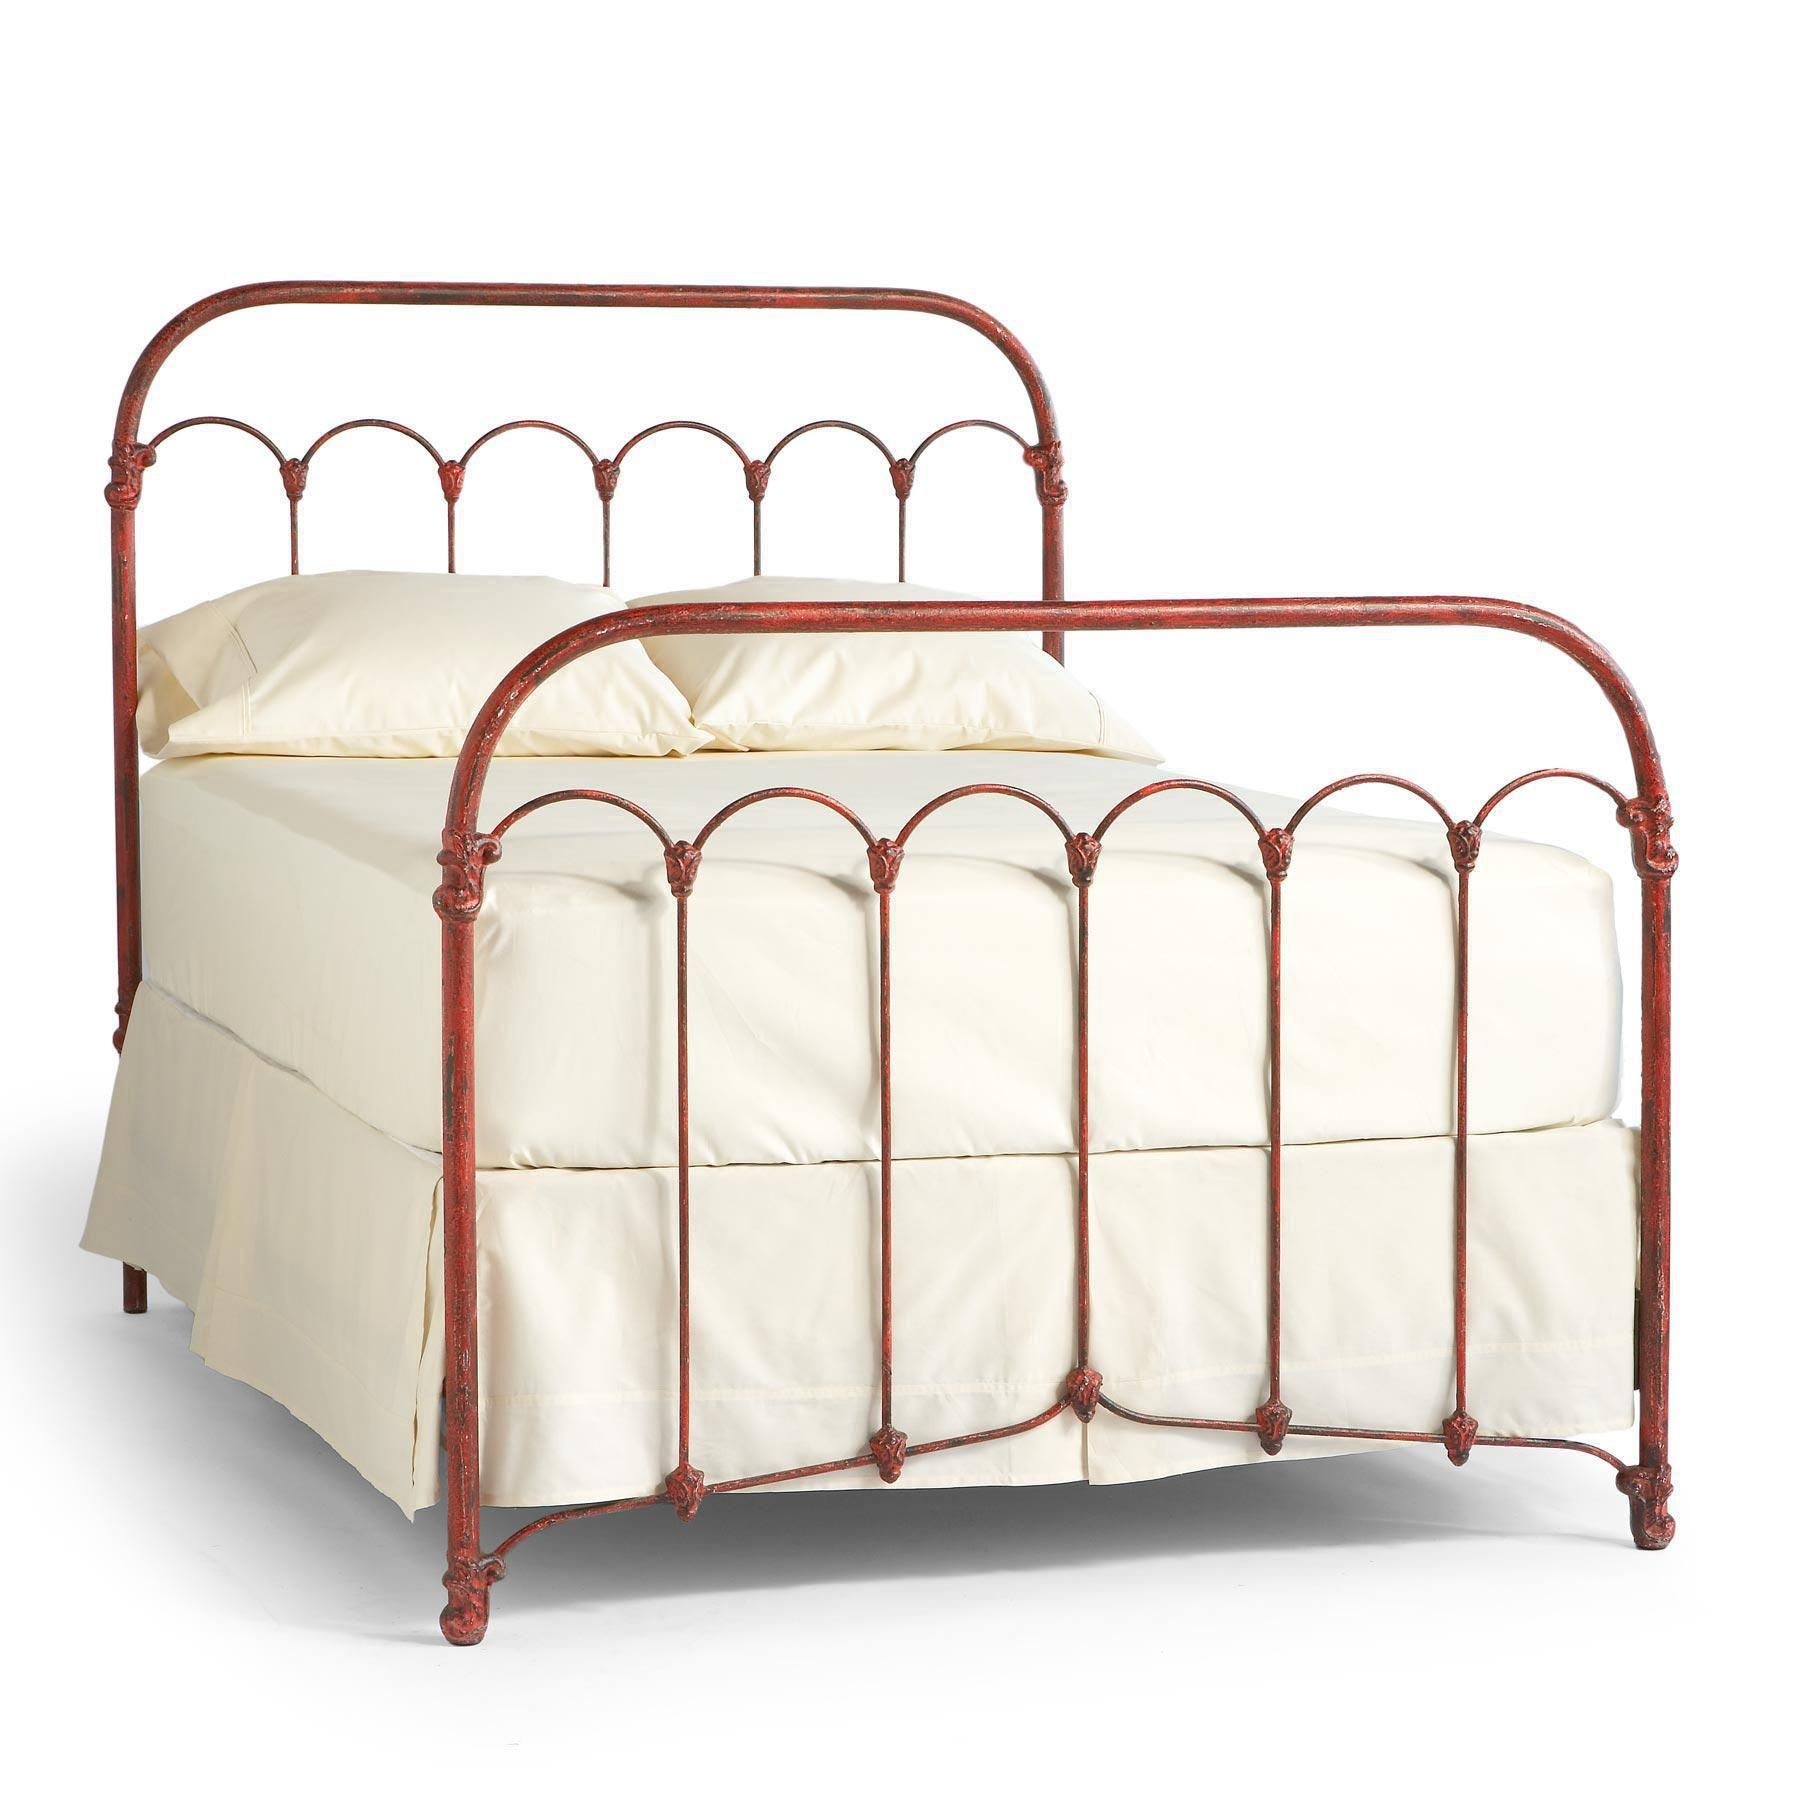 Bethany Iron Bed  Inspired By An Early Iron Bedstead,